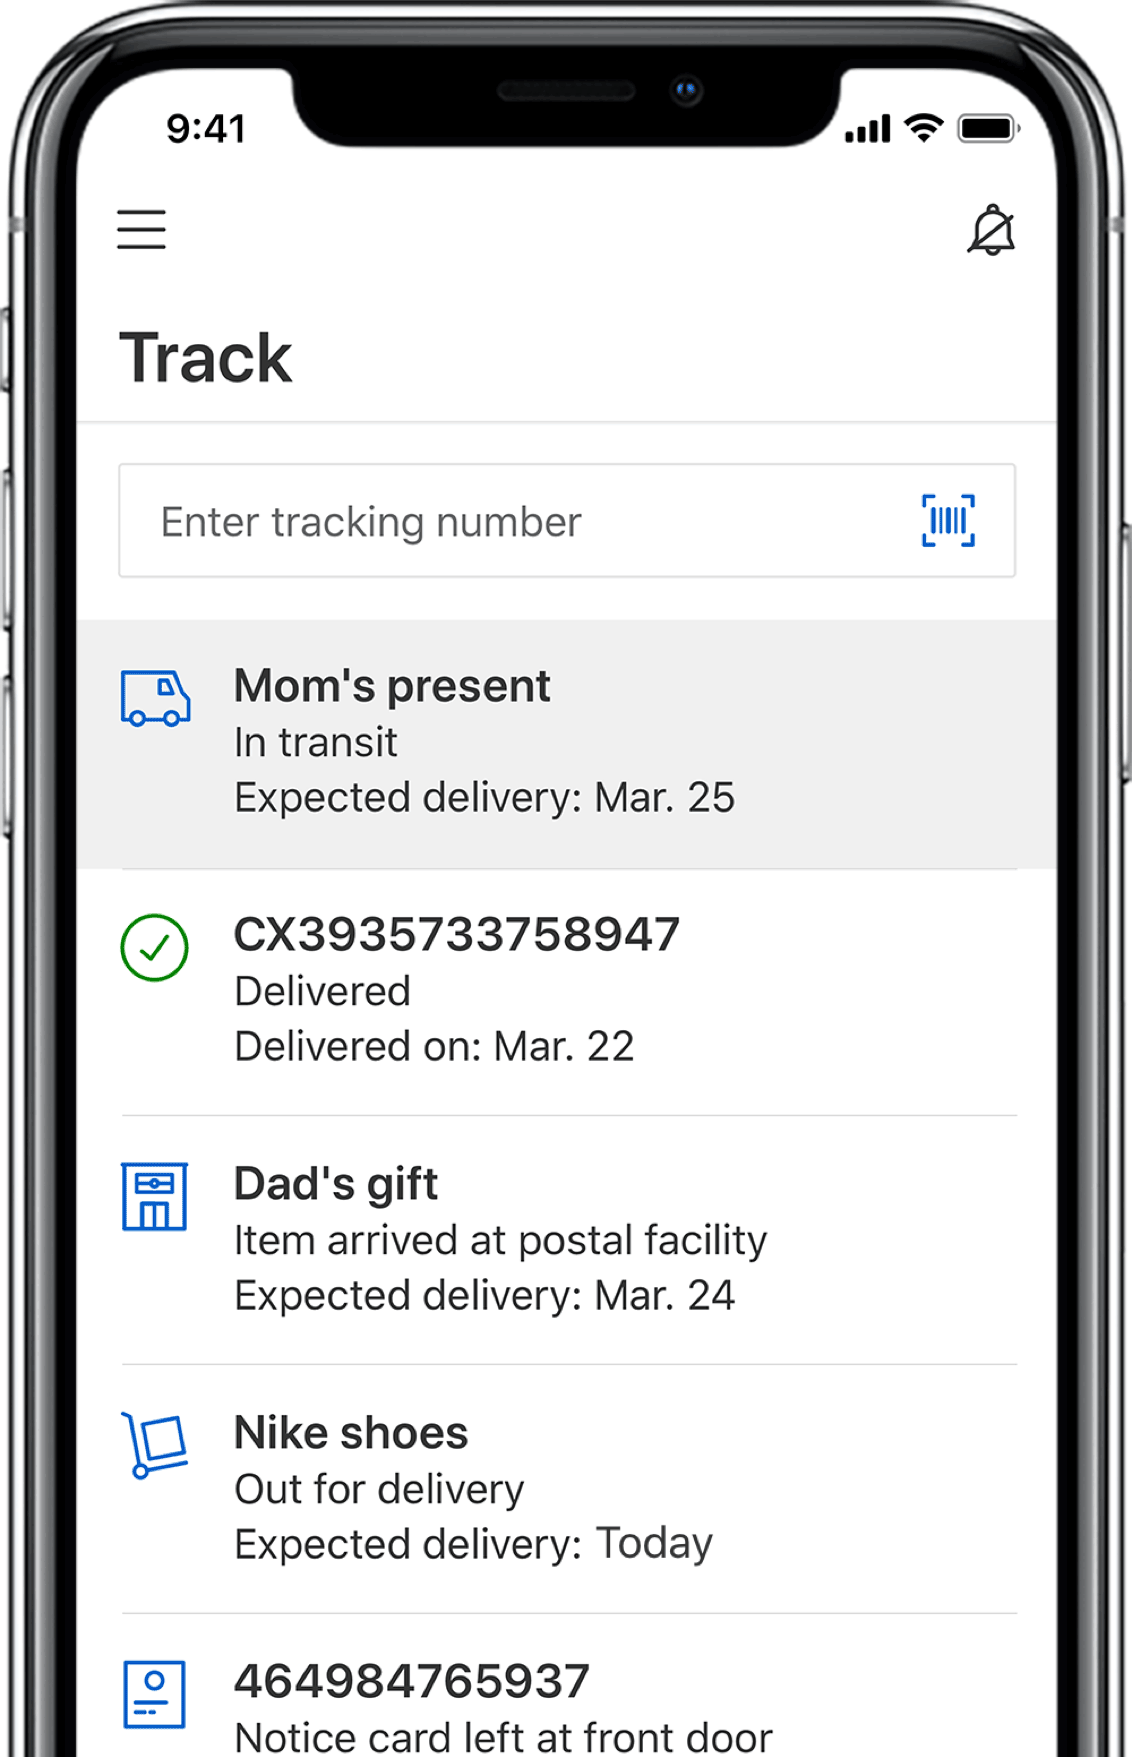 Image of a mobile phone with details about how to track packages with Canada Post and save the information on your device.